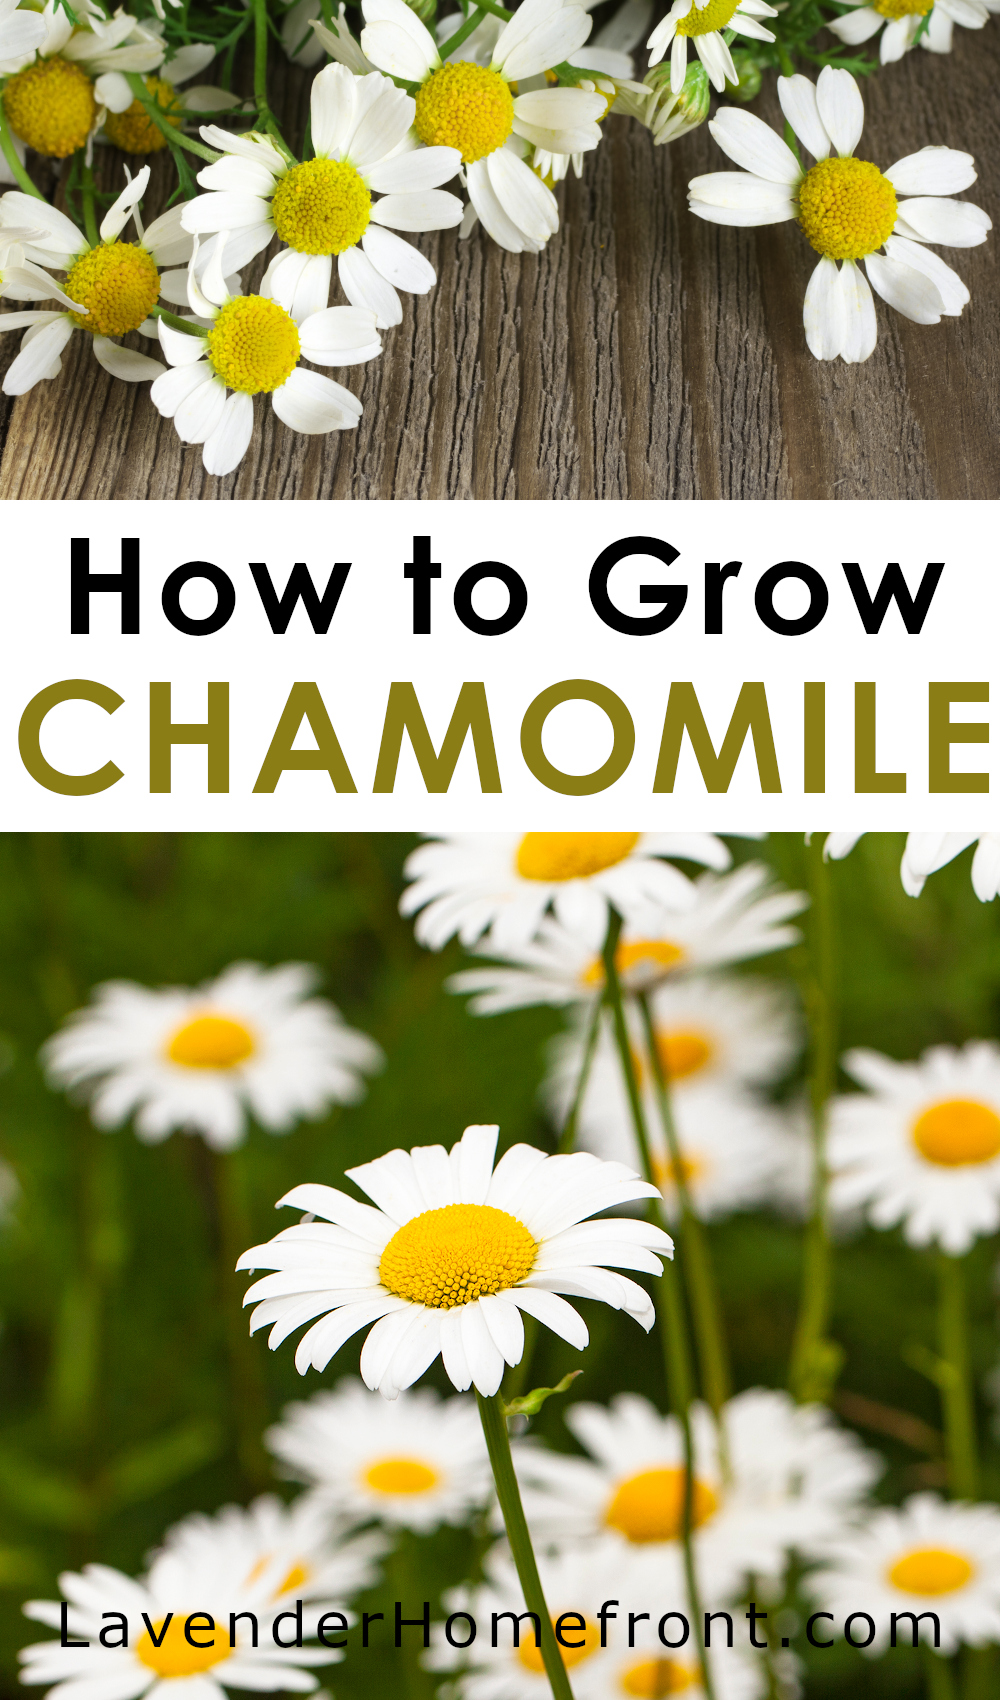 How to grow the herb chamomile pinnable image with text overlay.